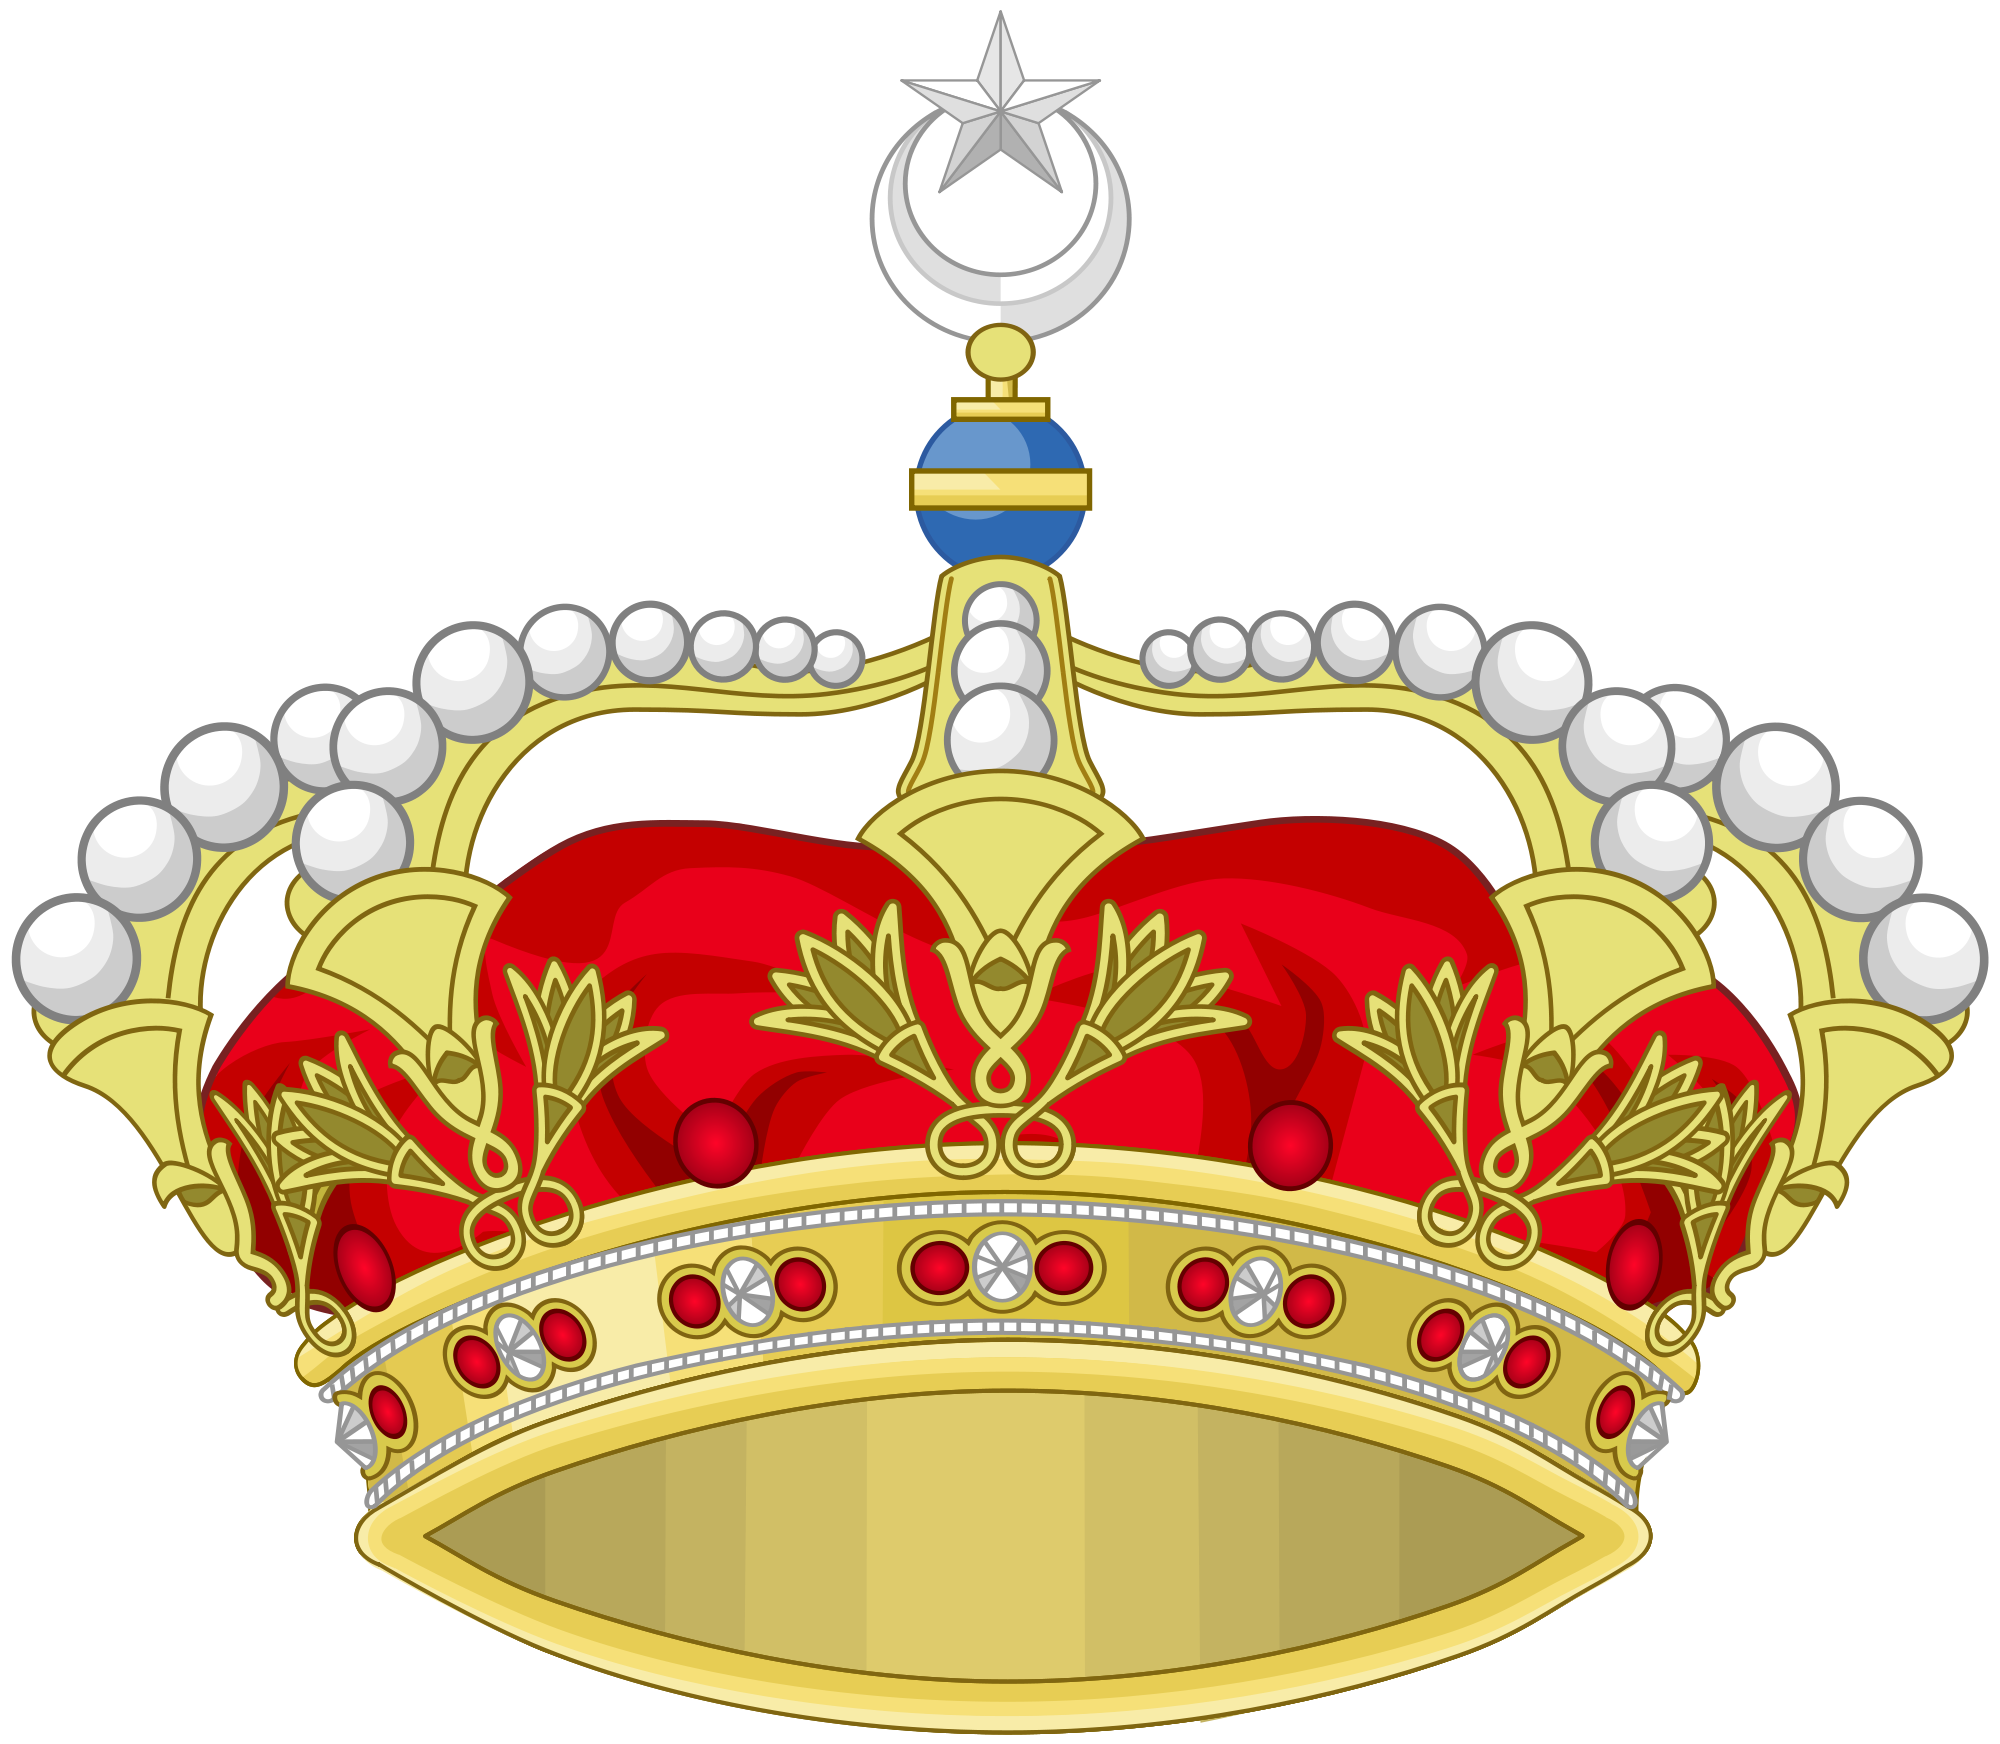 clipart royalty free library Chandelier clipart svg. File heraldic royal crown.